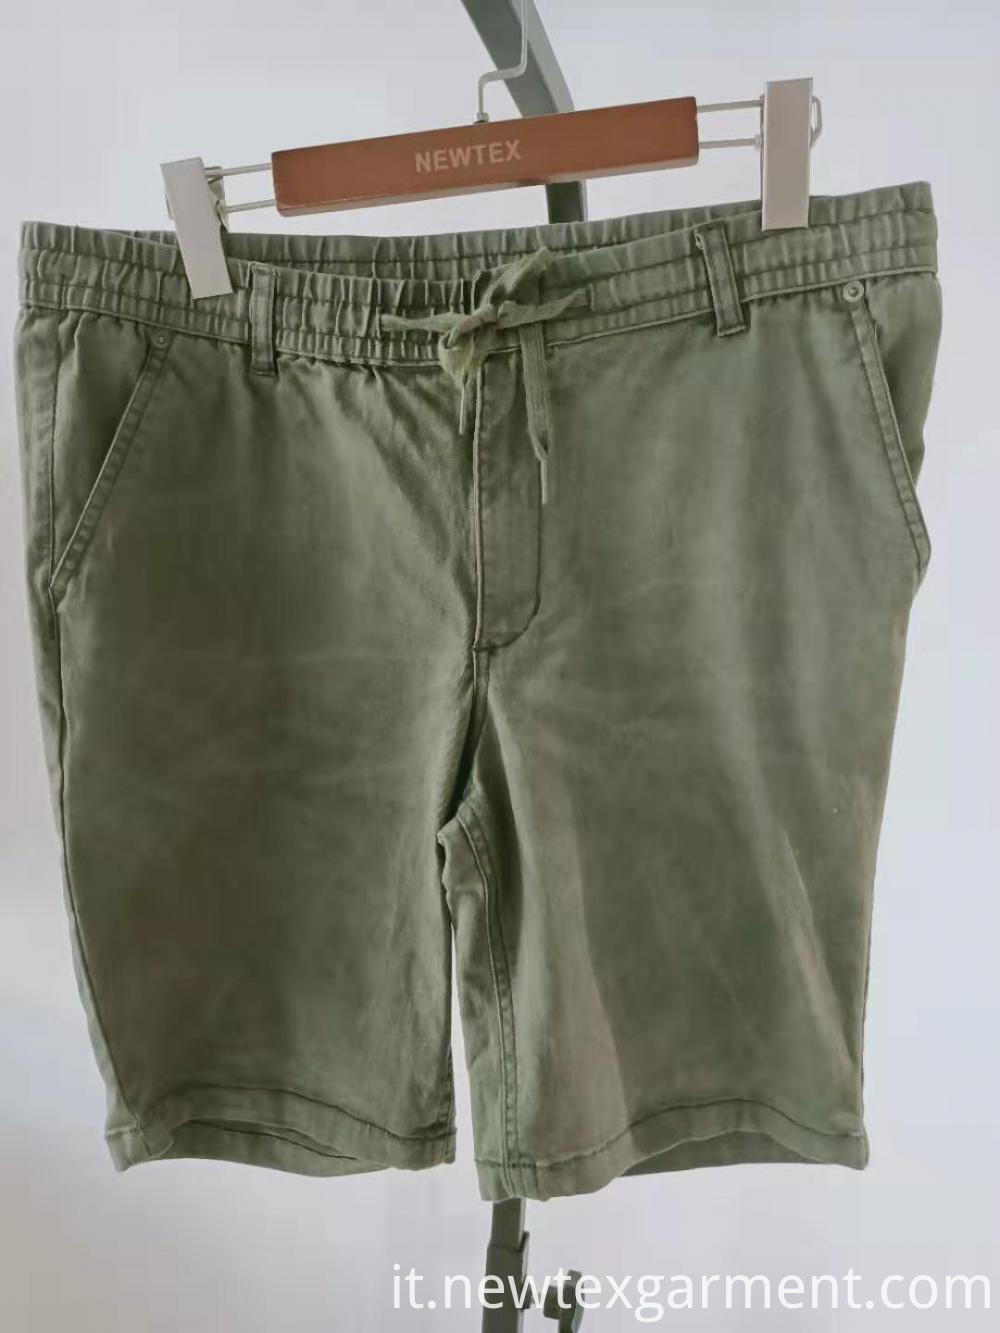 elastic waist mens shorts